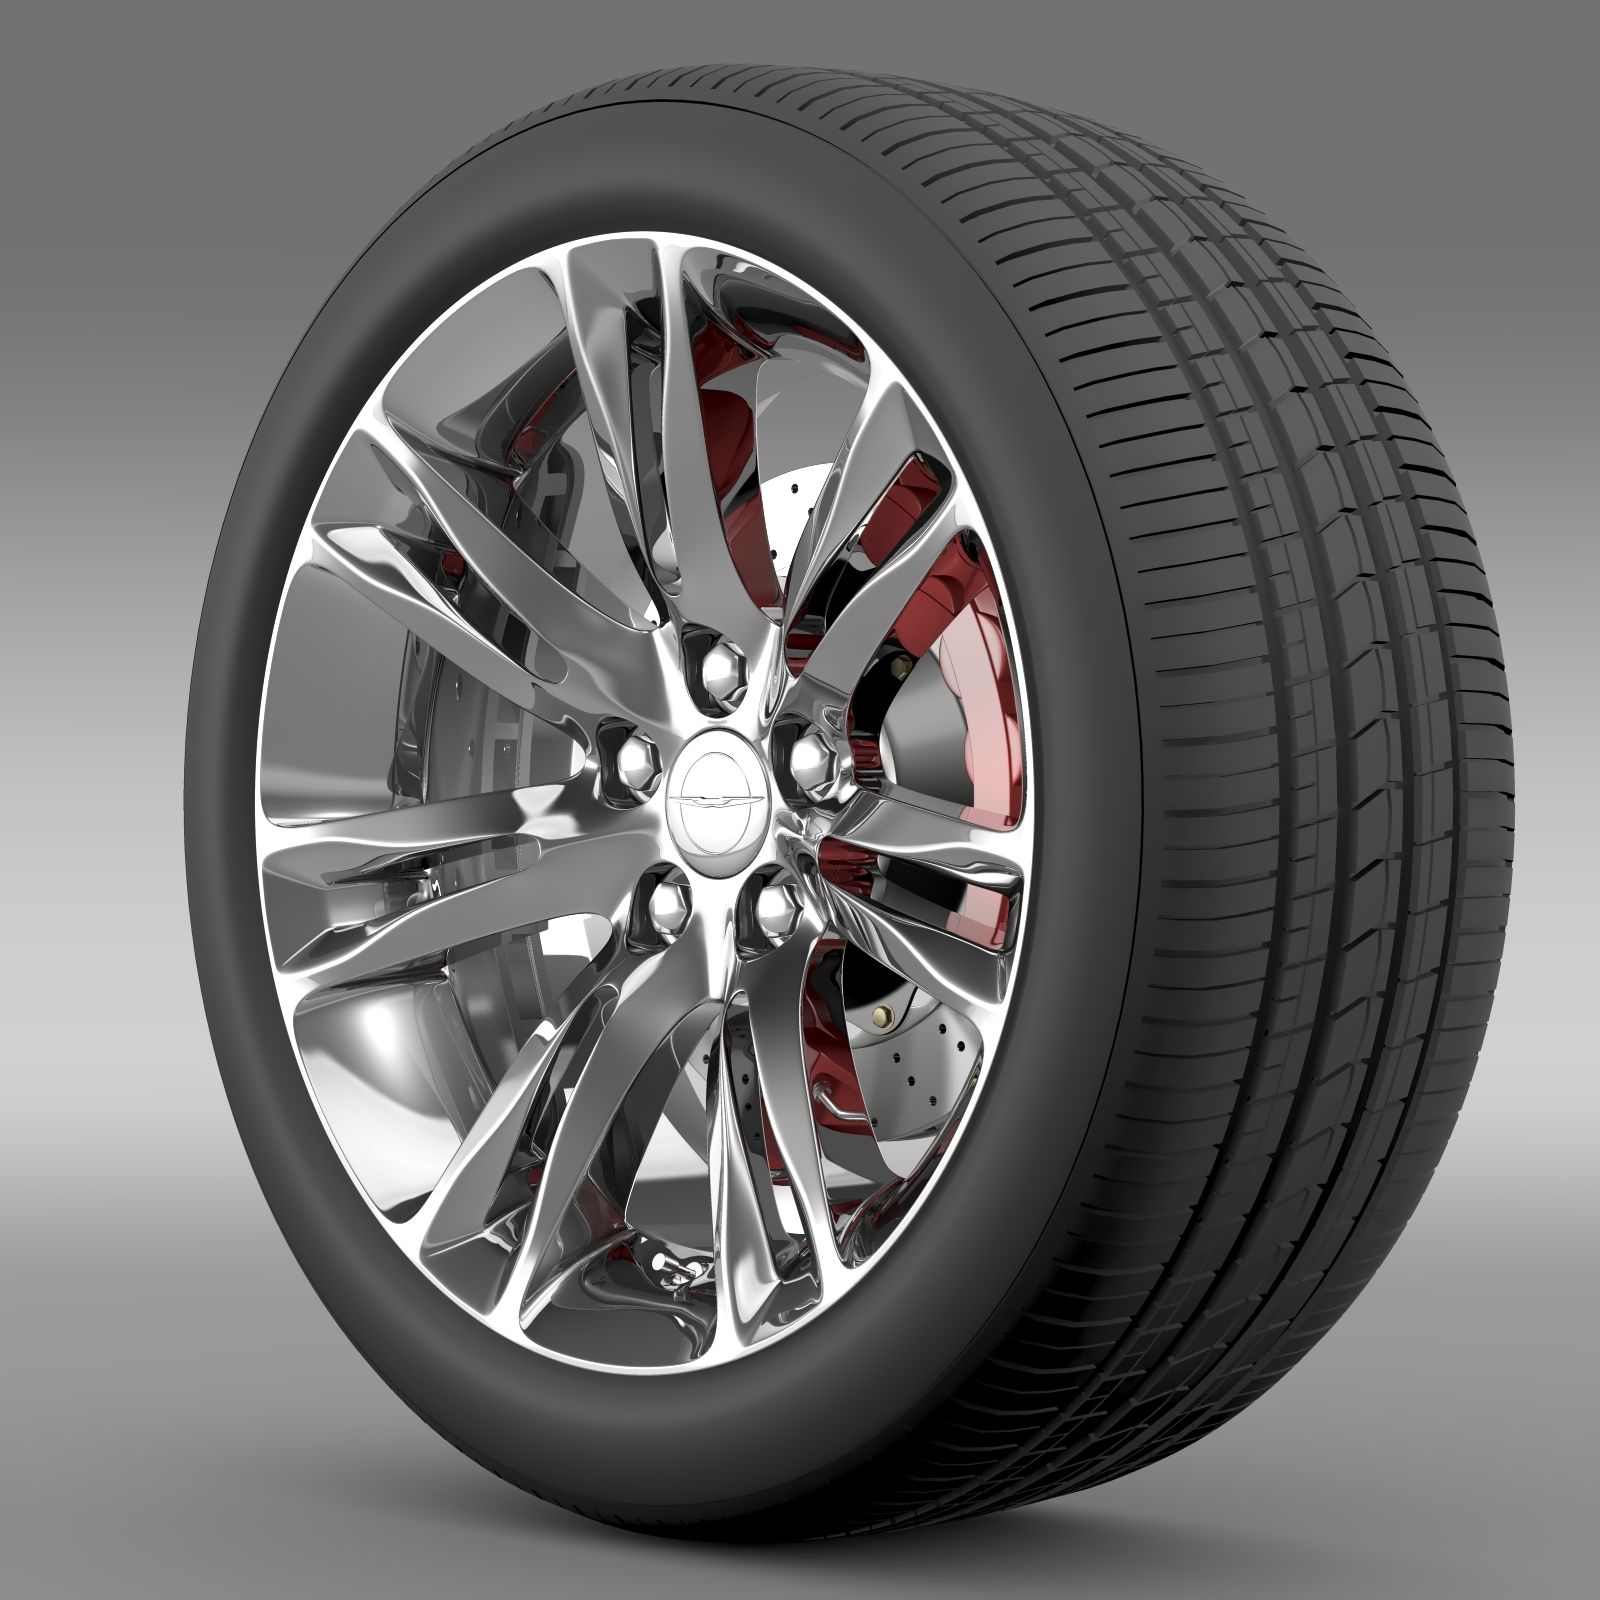 chrysler 300c 2015 wheel 3d model 3ds max fbx c4d lwo ma mb hrc xsi obj 212760